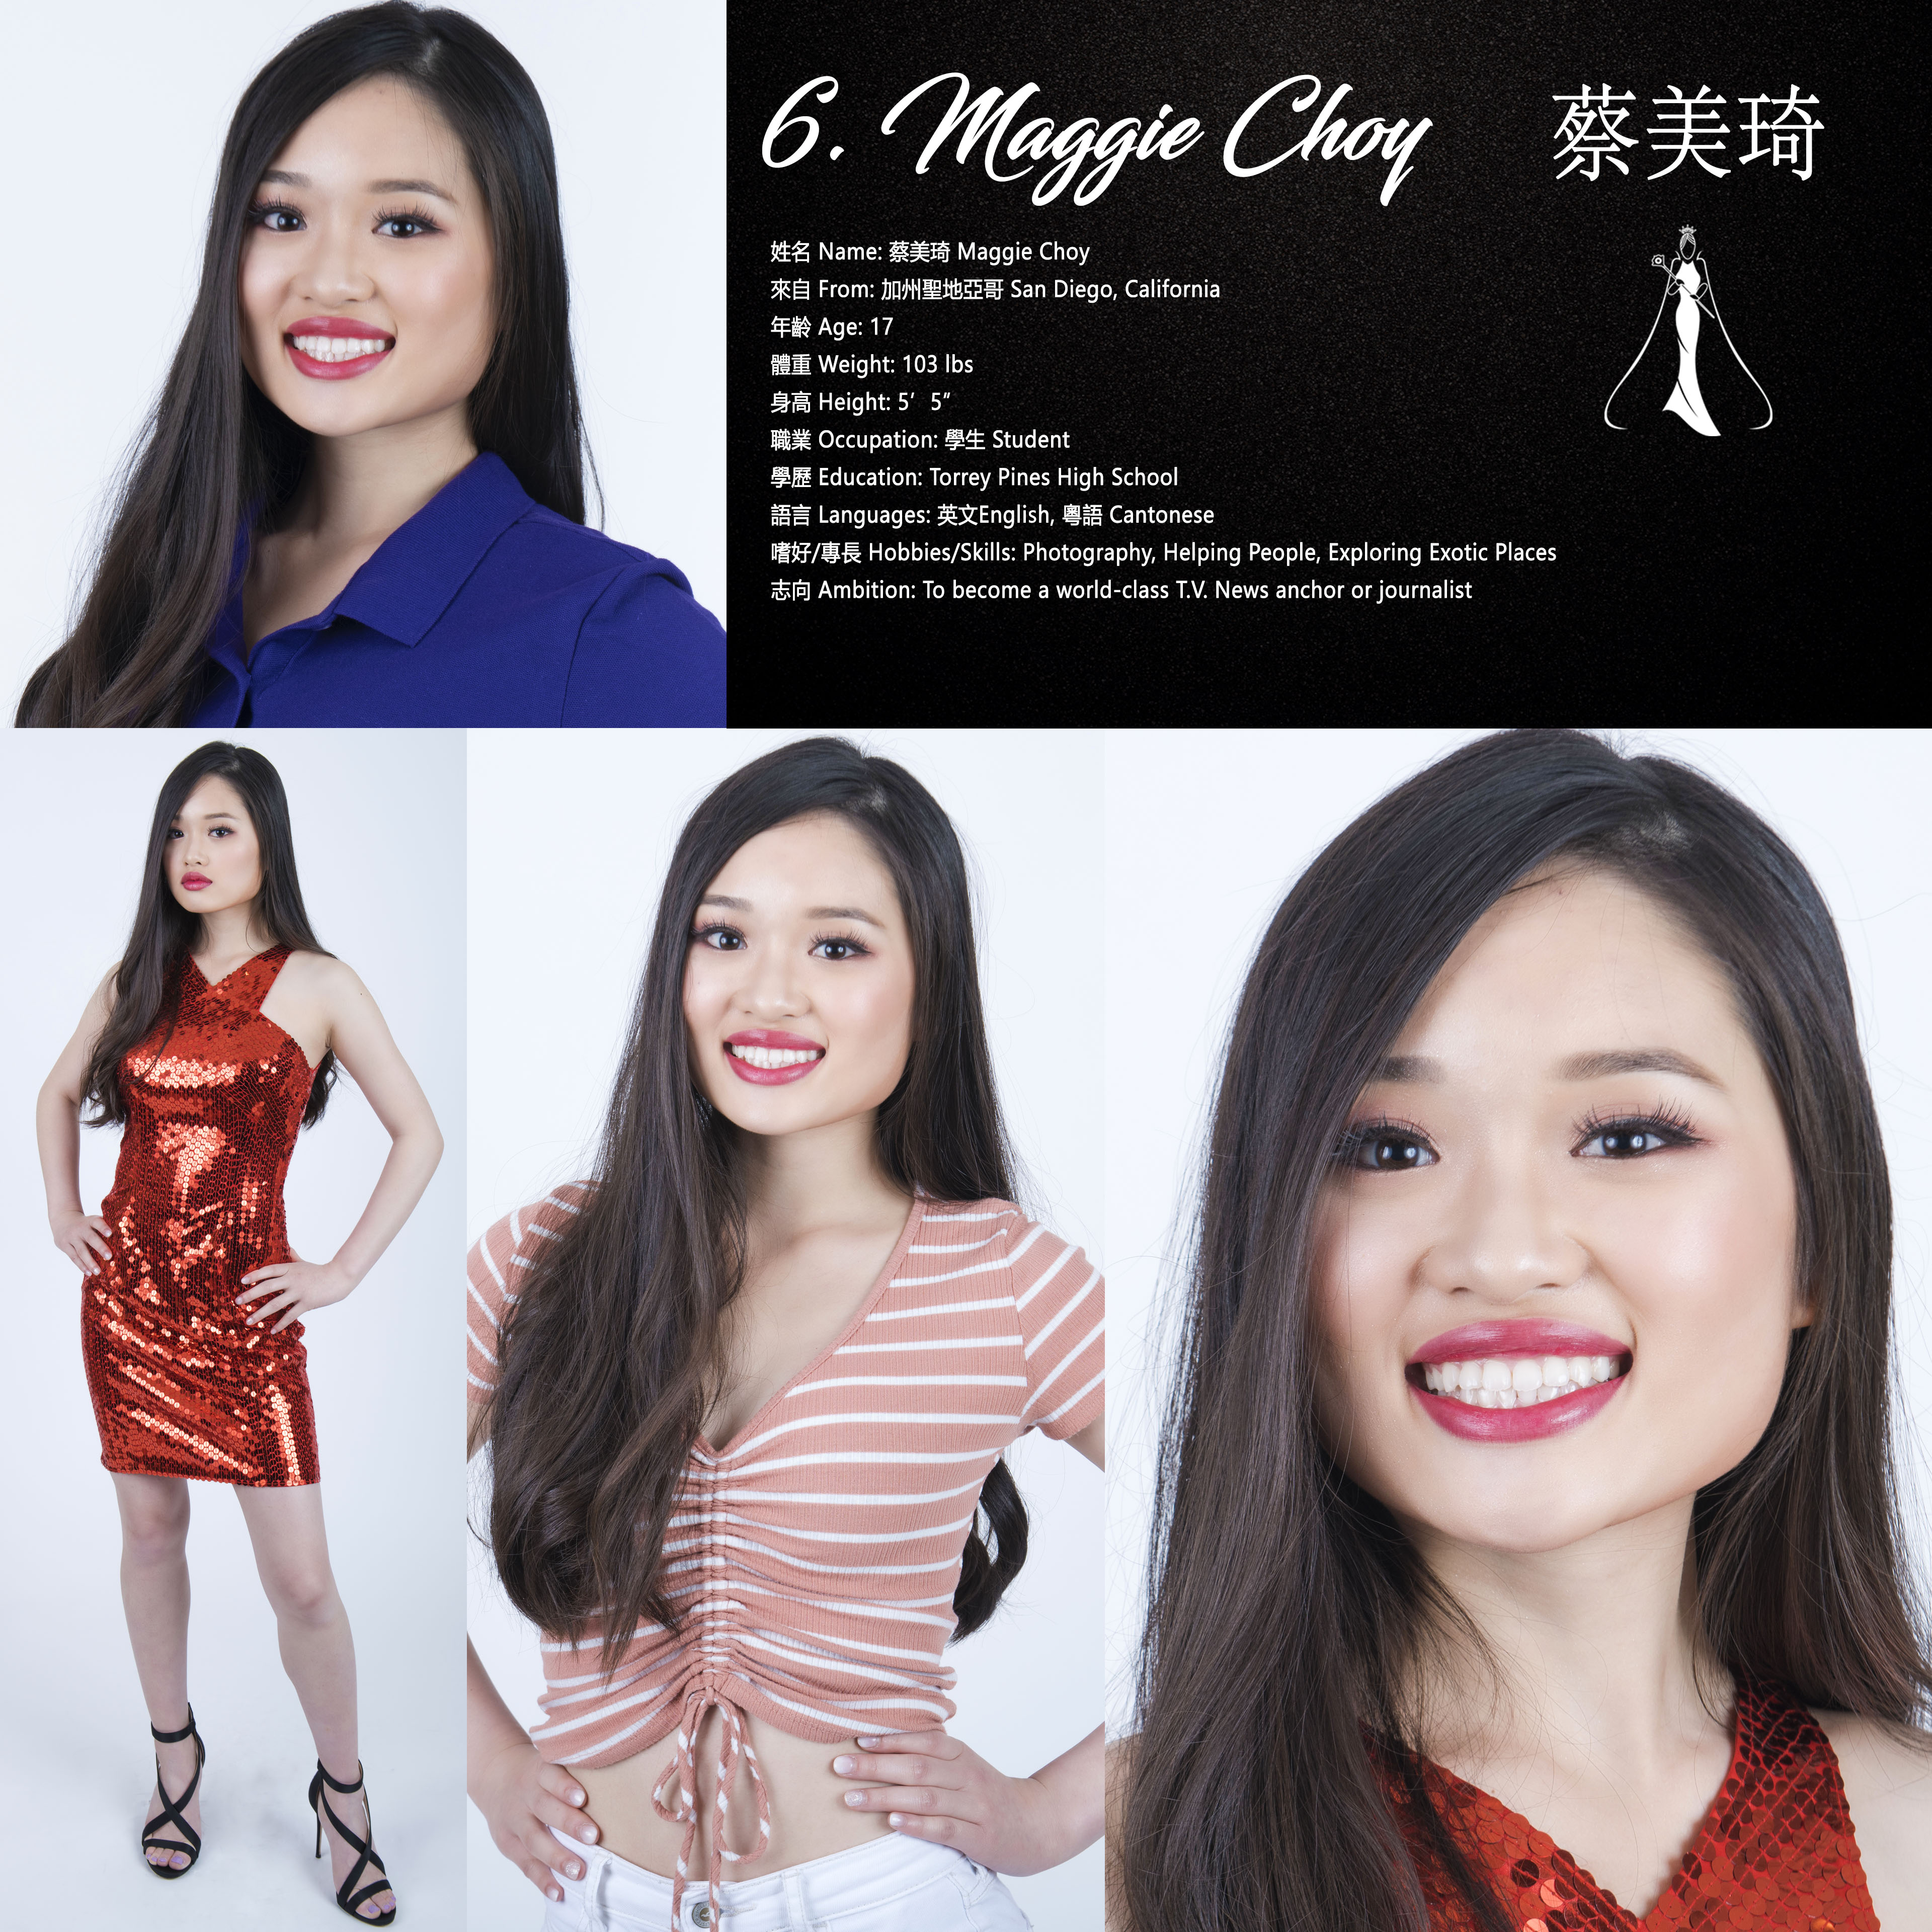 MCBP2018 Finalists No.6 Maggie Choy